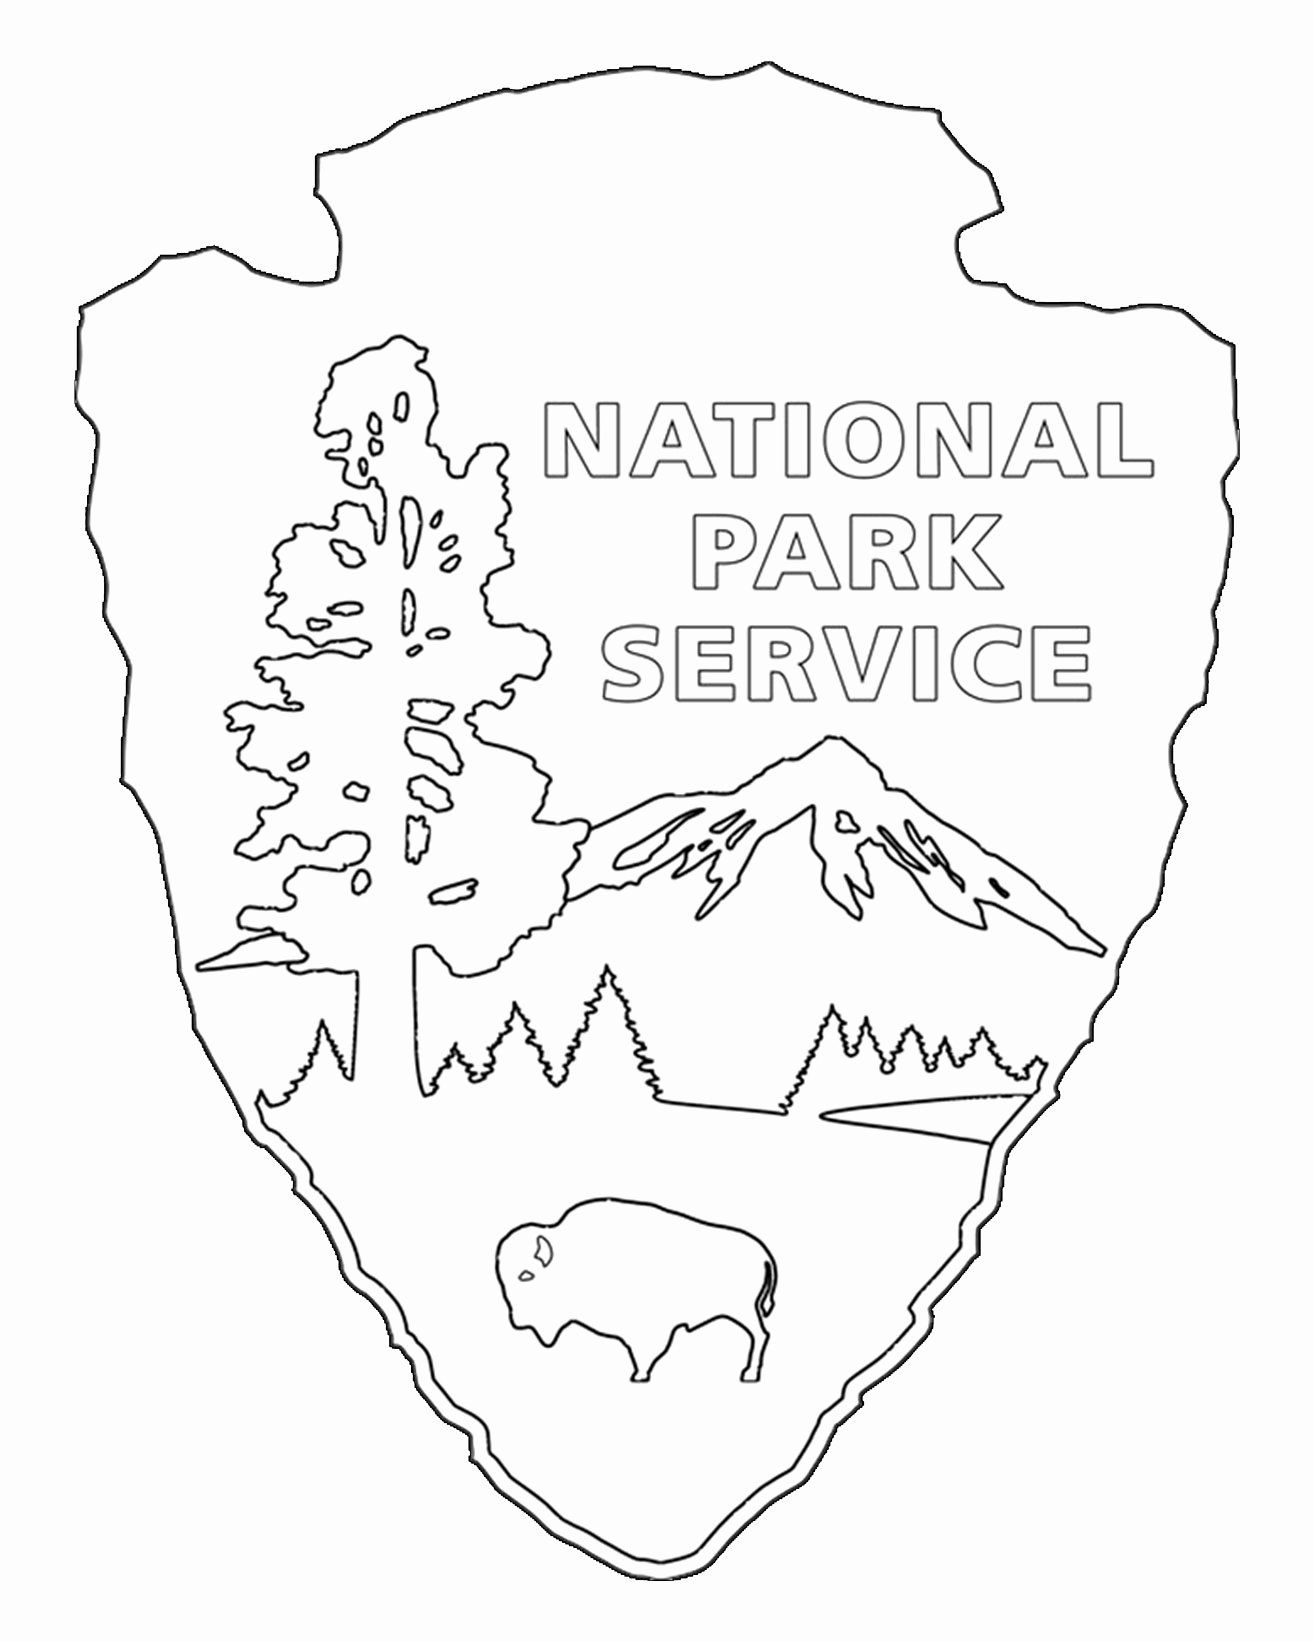 National Parks Coloring Book Best Of Charles Young Buffalo Sol Rs Coloring Book Charles Coloring Books Abstract Coloring Pages Coloring Pages